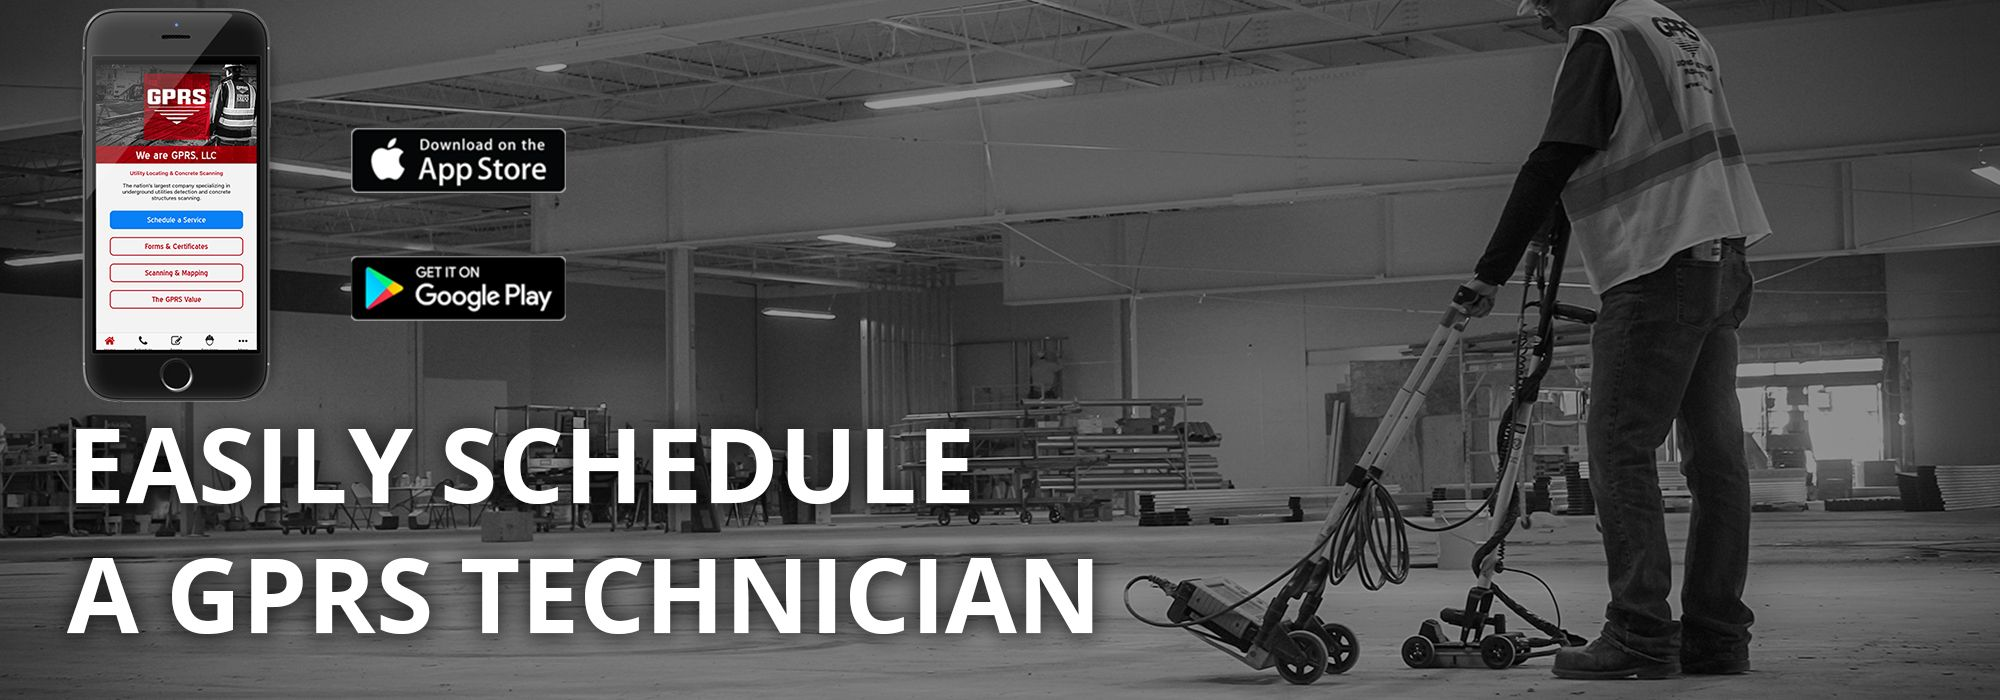 Easily Schedule A GPRS Technician with our App